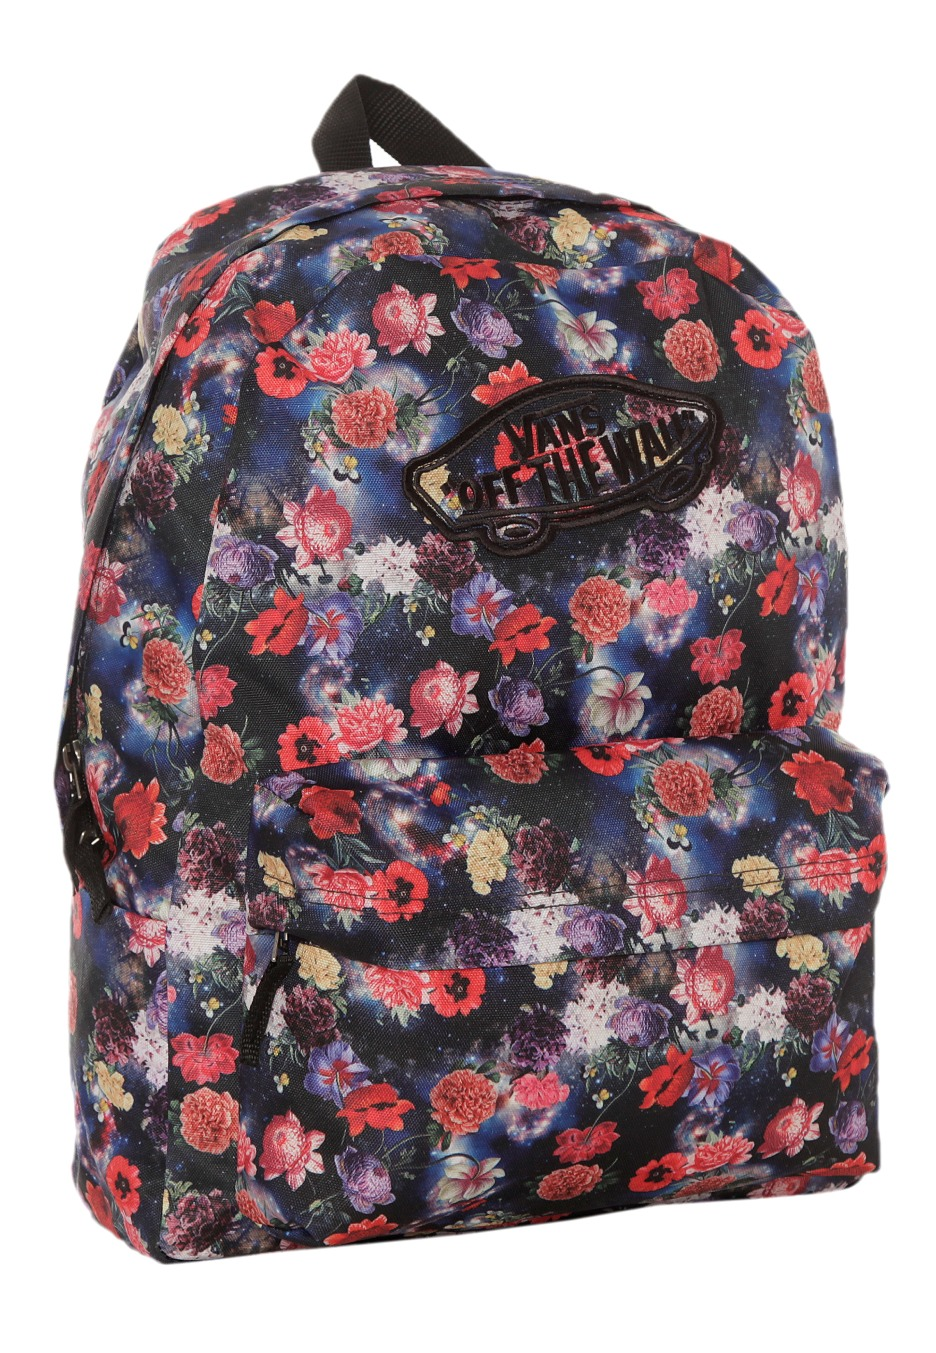 7a9cb32bbd Vans - Realm Galaxy Floral - Backpack - Impericon.com UK